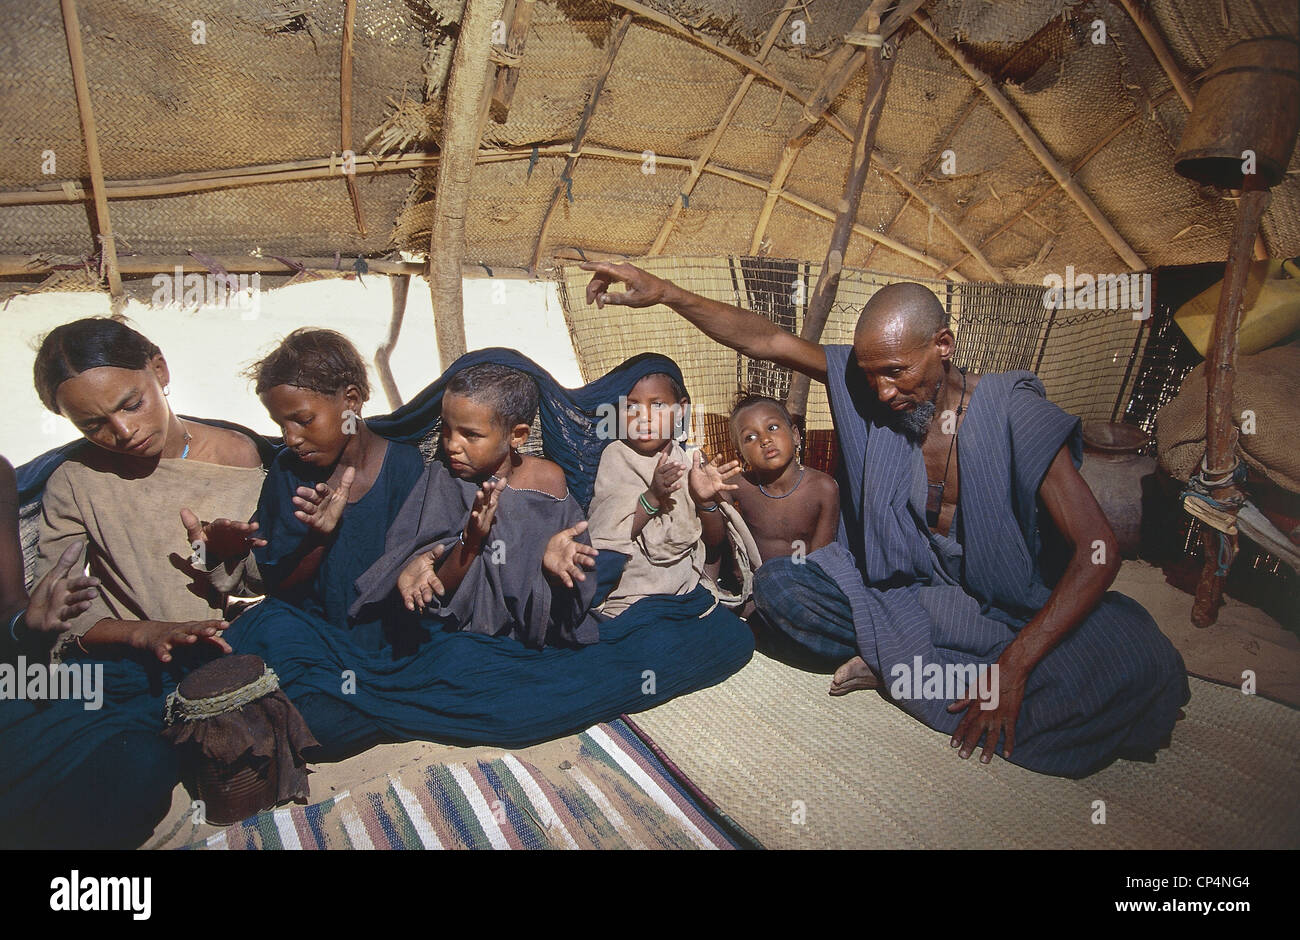 Mali - Desert near Timbuktu (or Tombouctou Tombouctou). Man with children in a Tuareg tent  sc 1 st  Alamy & Mali - Desert near Timbuktu (or Tombouctou Tombouctou). Man with ...